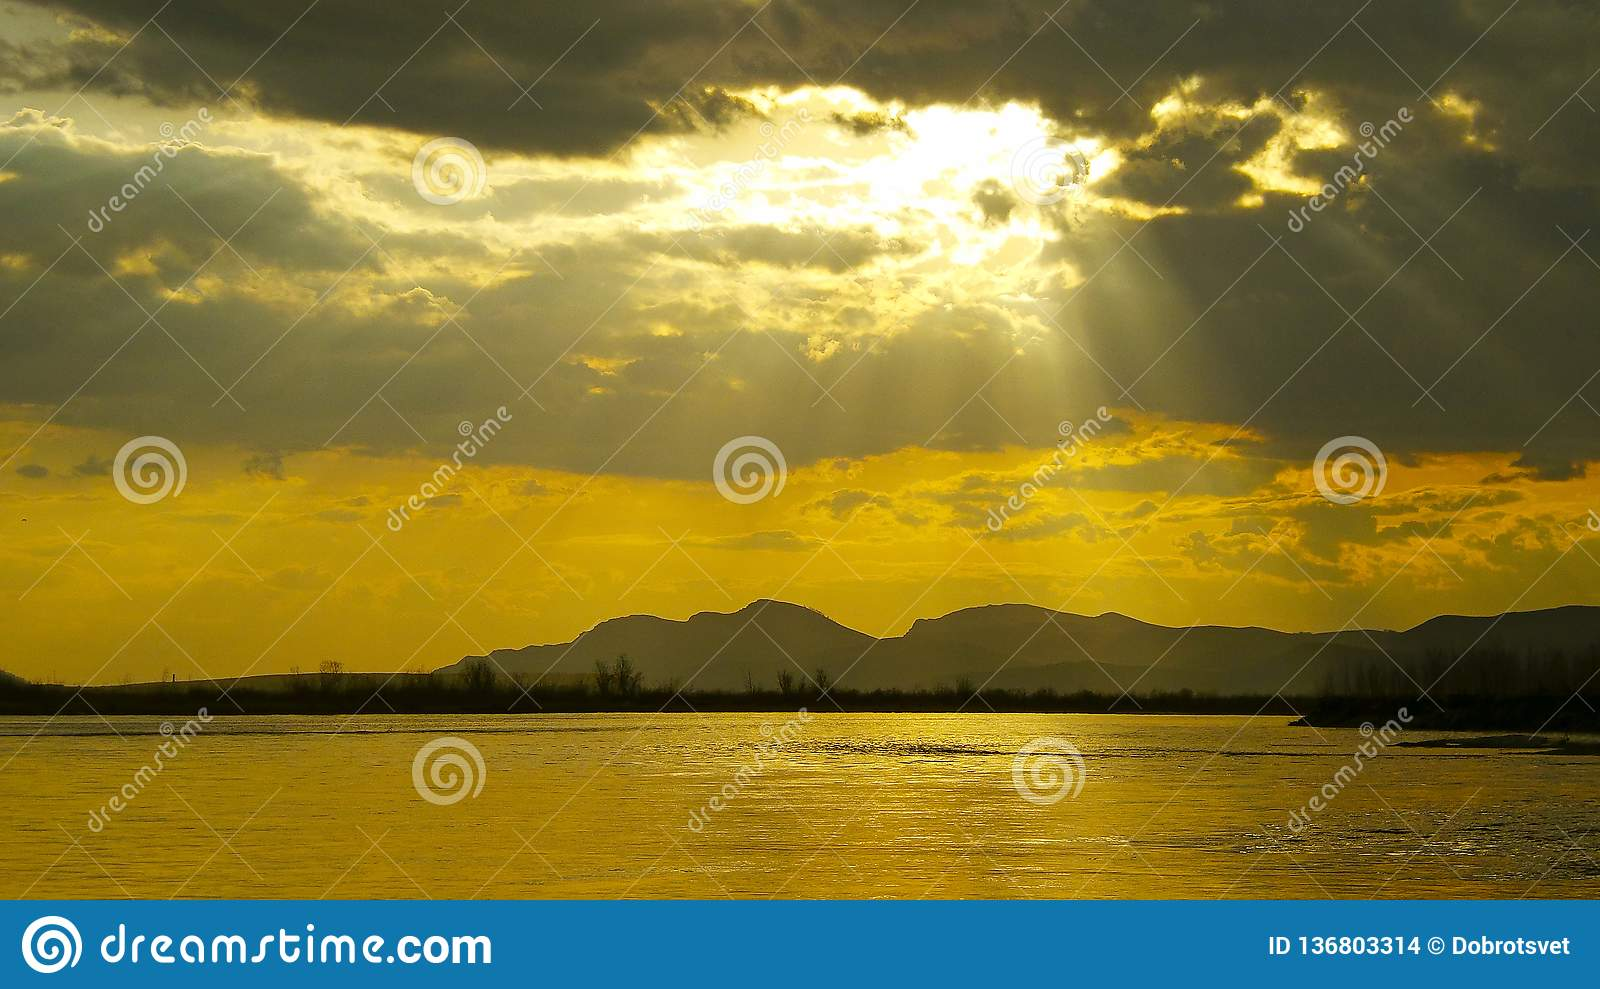 The golden ray of the sun from behind a dark cloud illuminates the evening lake